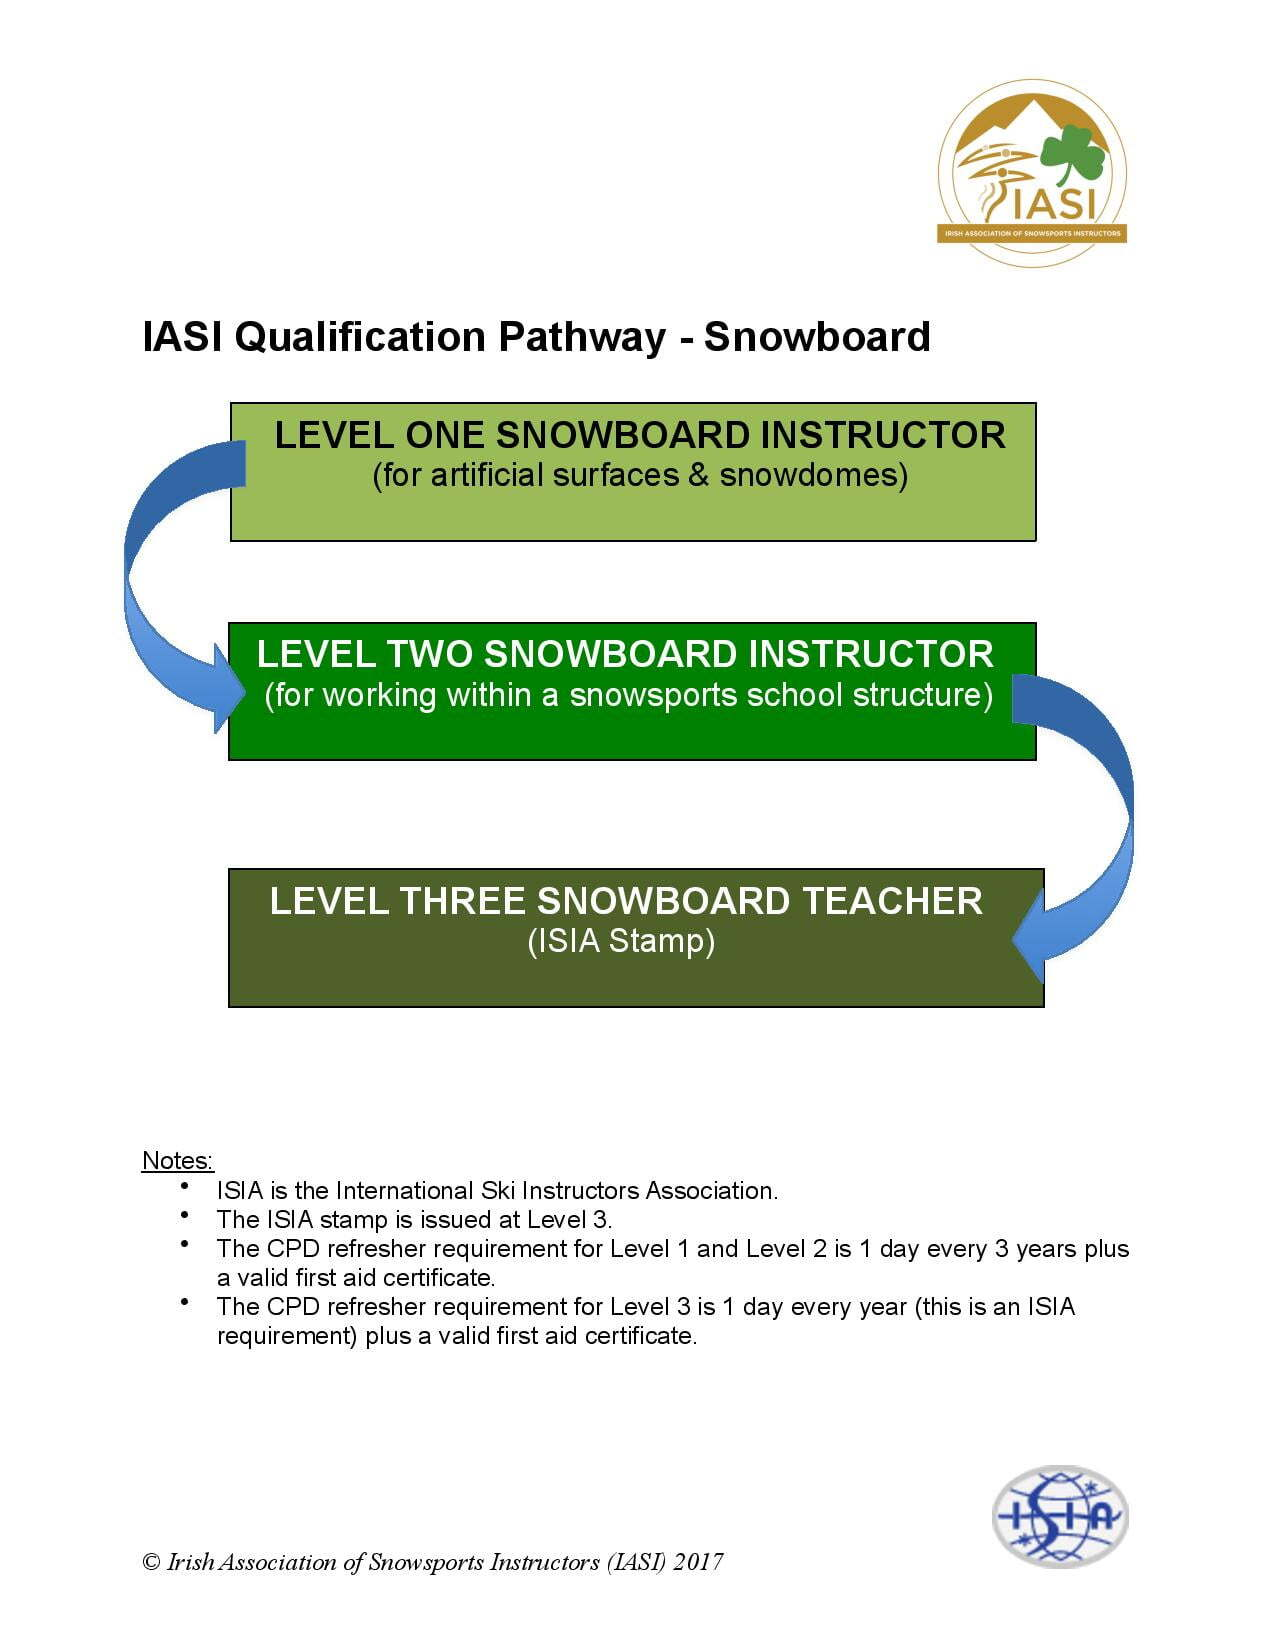 IASI_Qualification_Pathway_SB_1-page-001